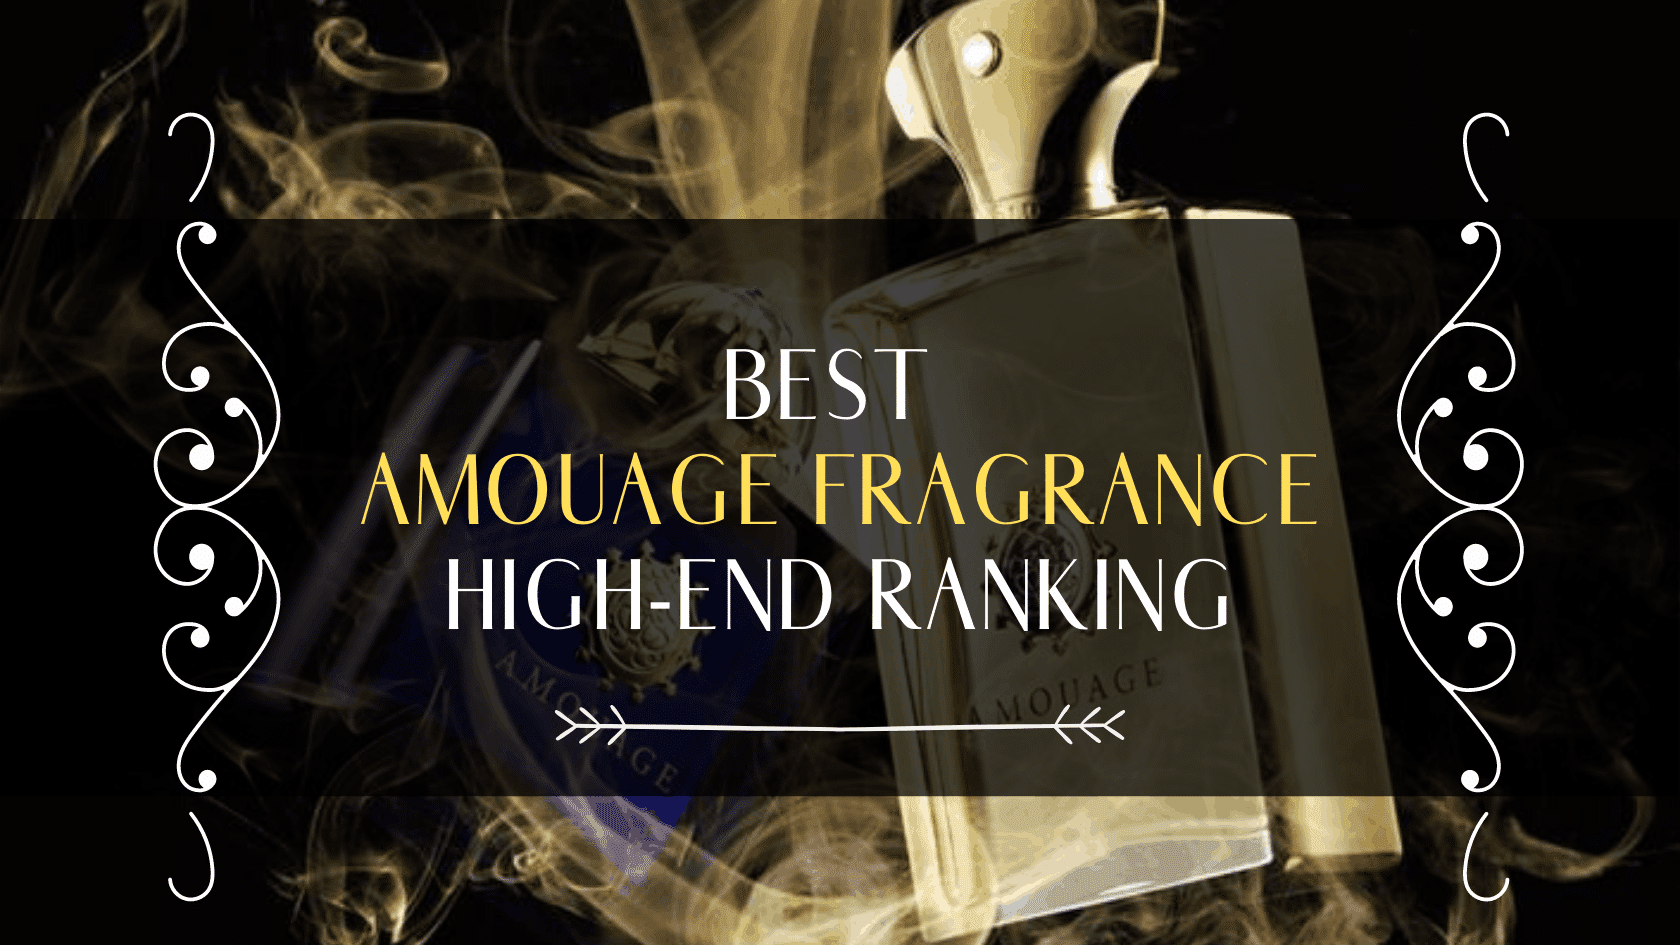 best amouage fragrance